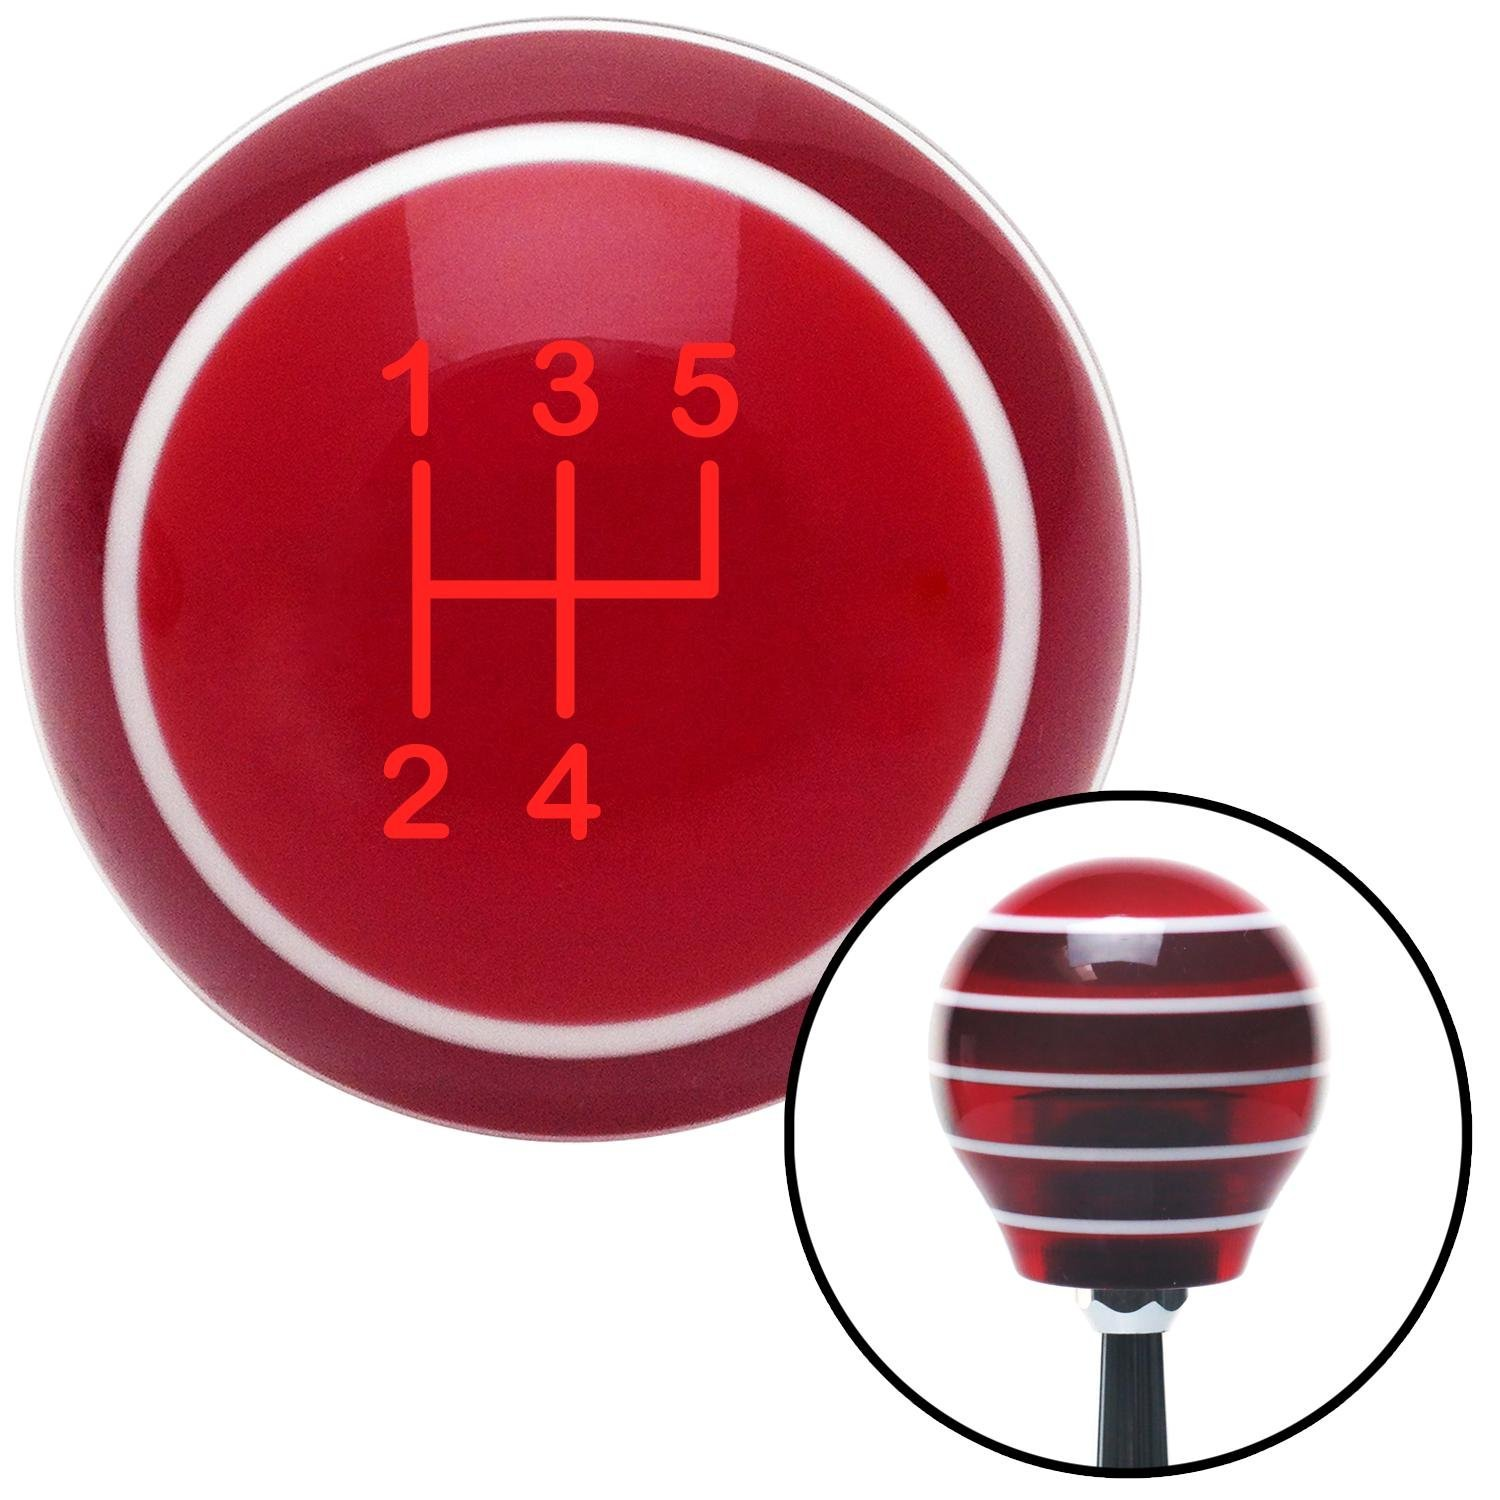 Red Shift Pattern 49n American Shifter 117863 Red Stripe Shift Knob with M16 x 1.5 Insert